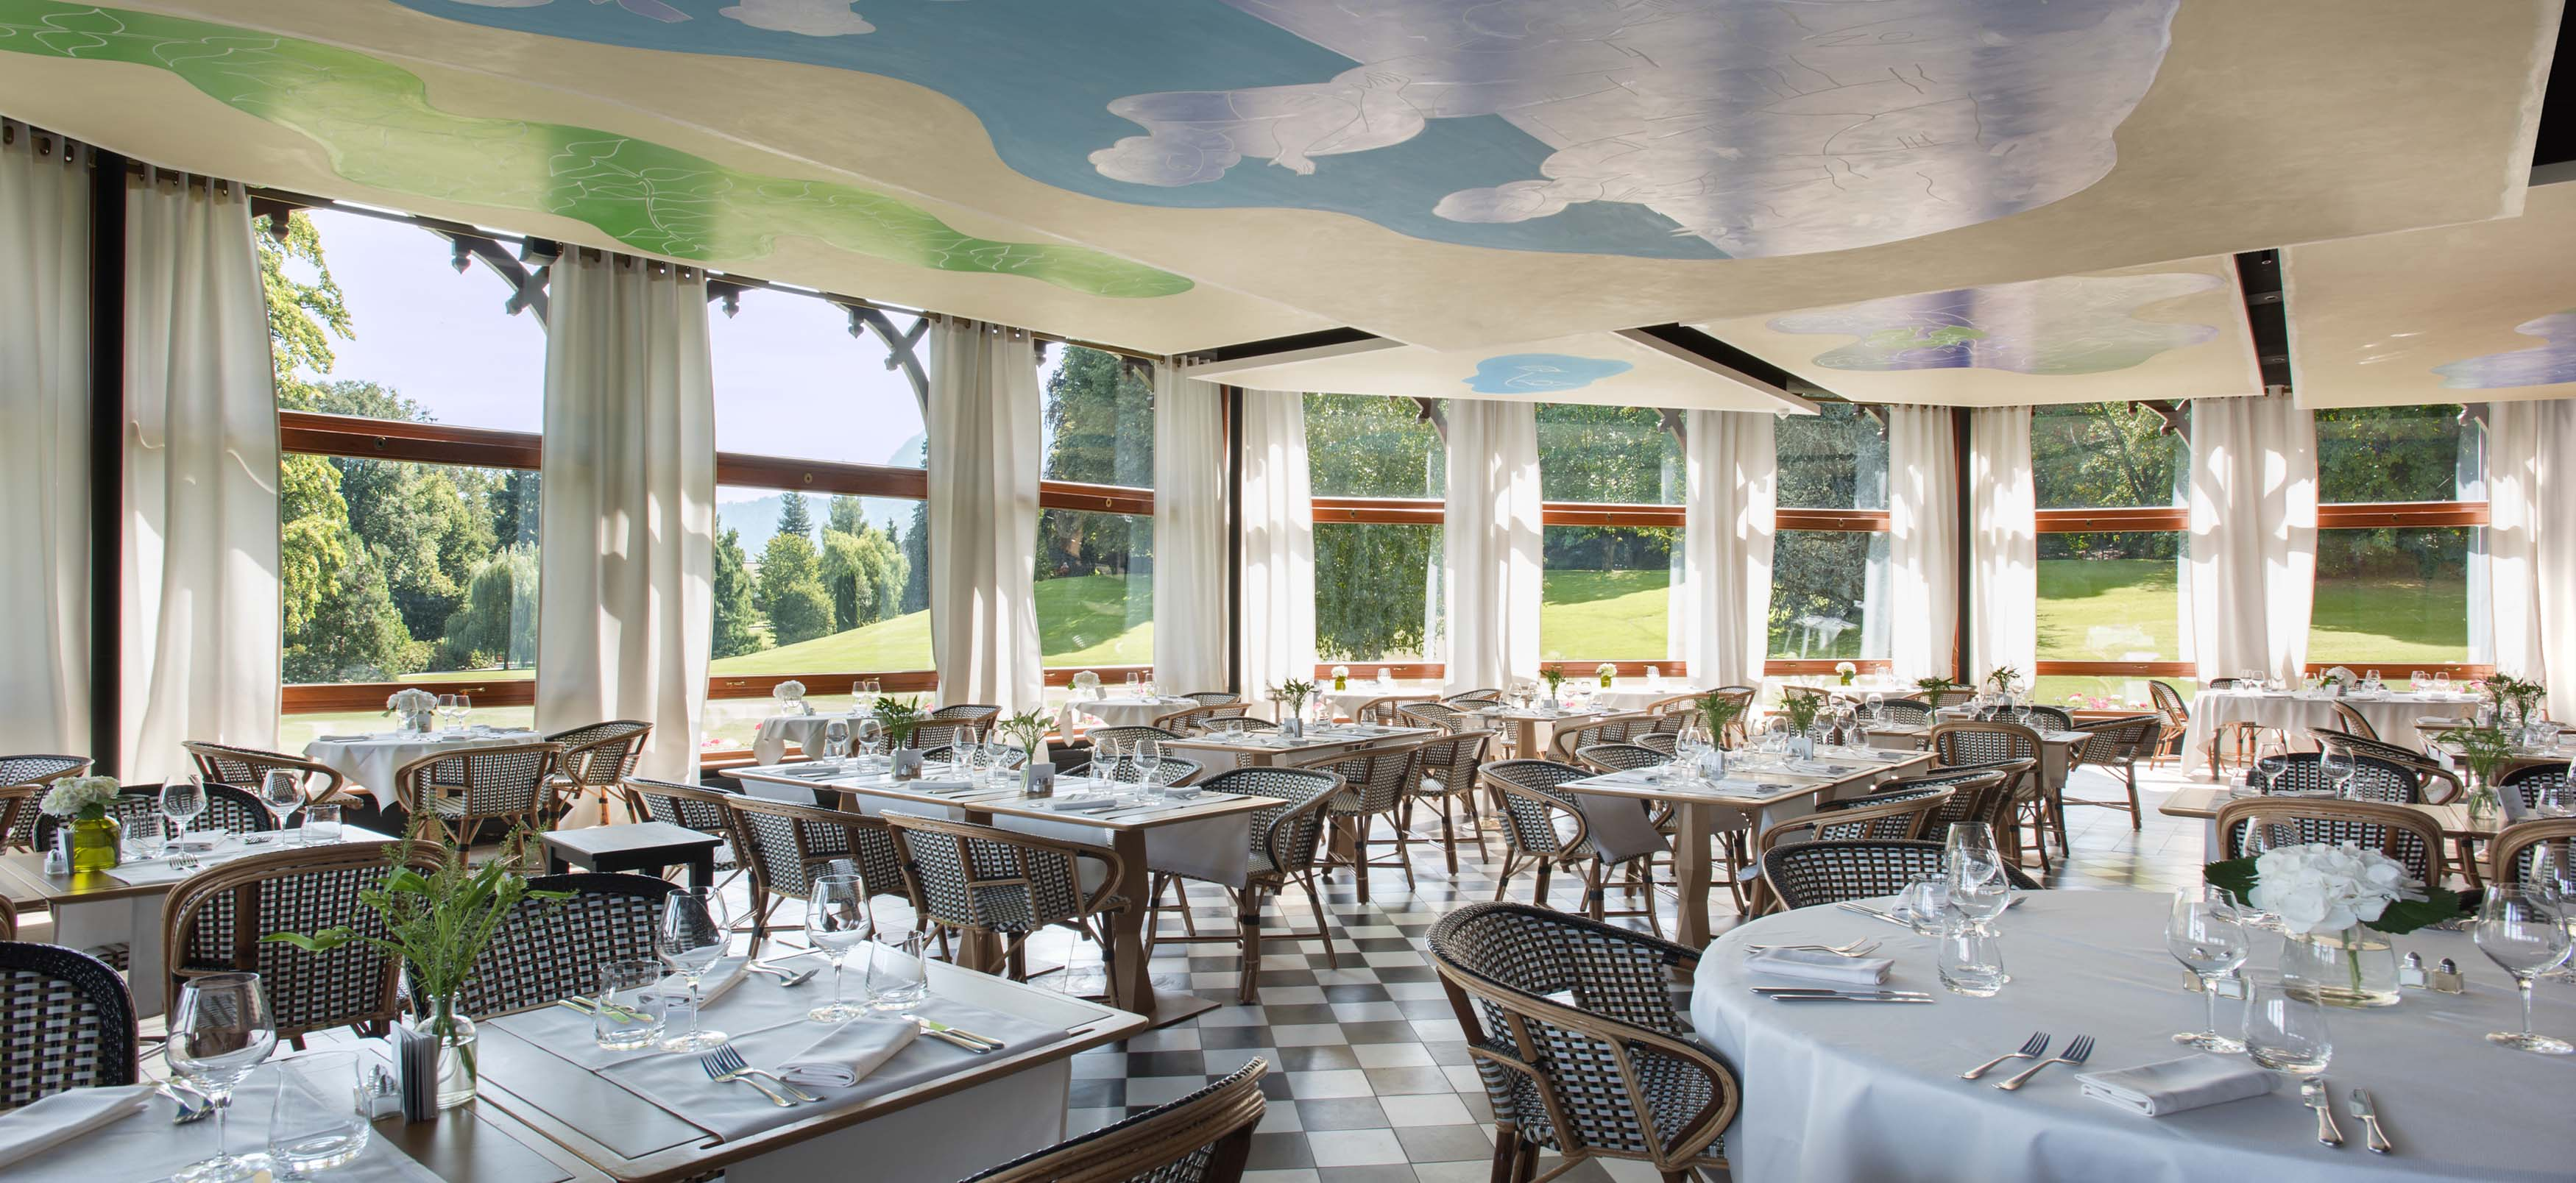 Restaurant la veranda 5 star hotel royal evian france for Hotel royal